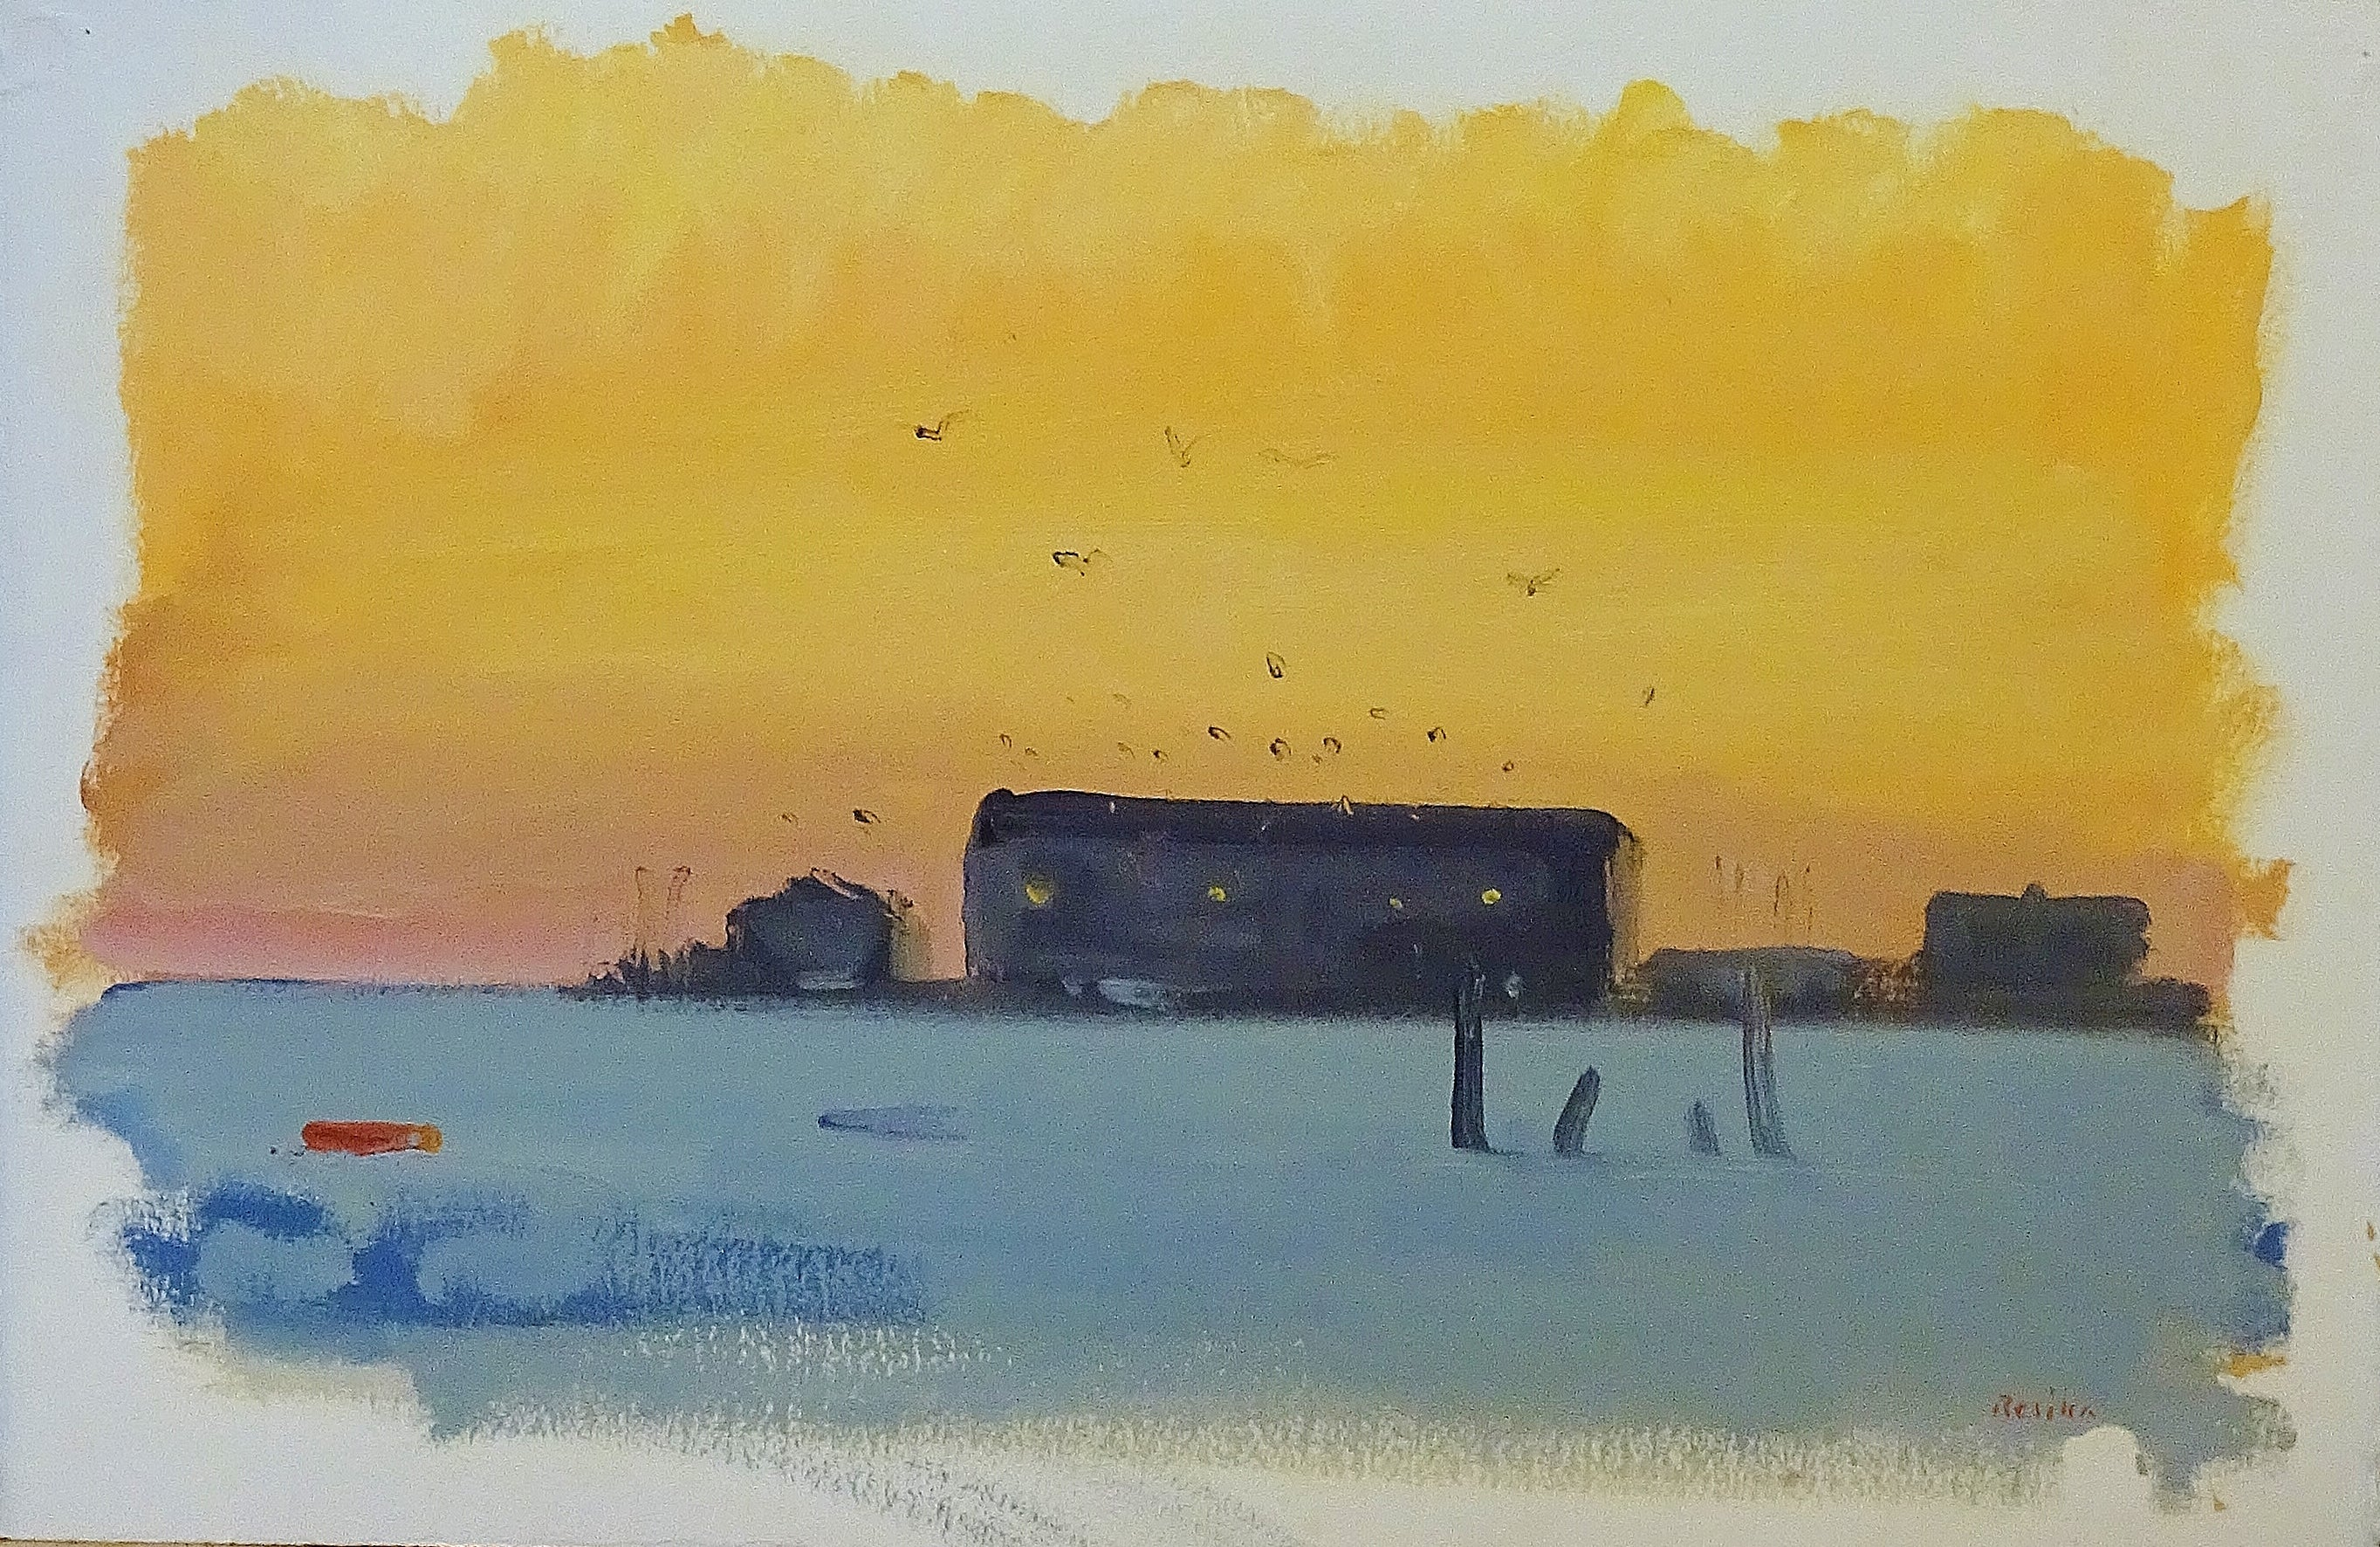 Paul Resika - Provincetown Pier, Slate Water, Painting For Sale at ...